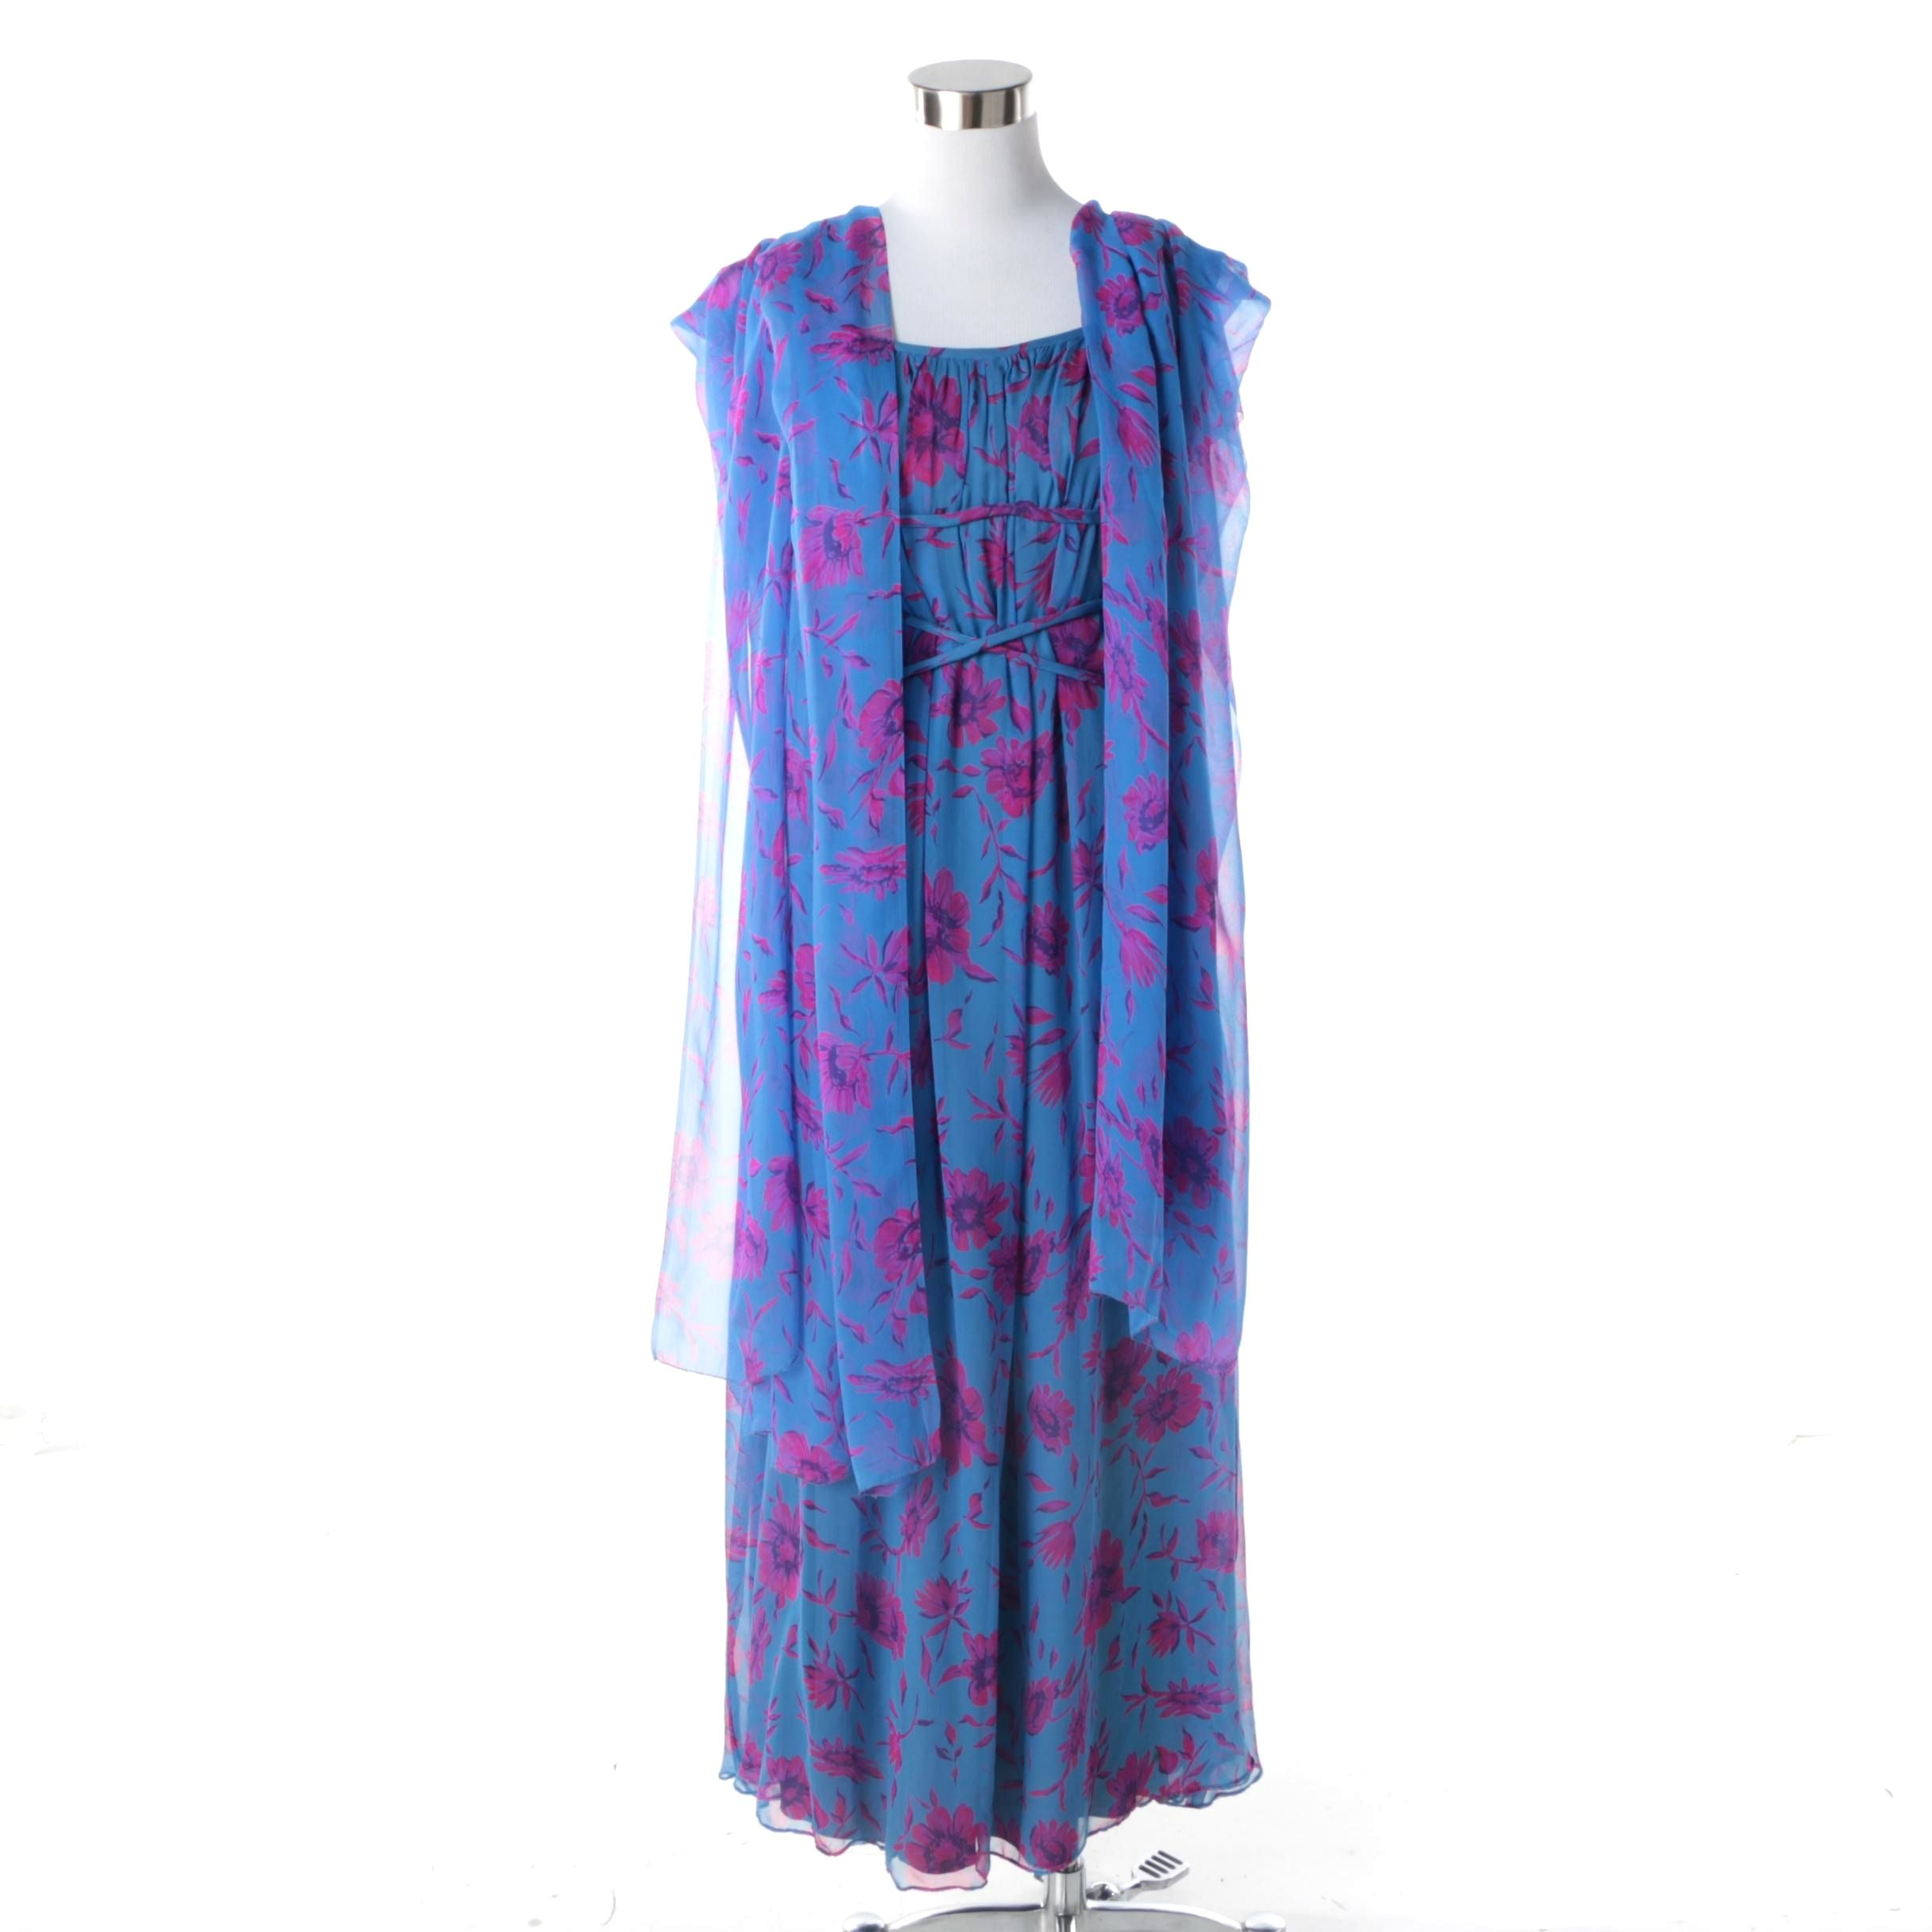 1970s Vintage Blue and Pink Silk Chiffon Sheer Layered Evening Dress with Shawl